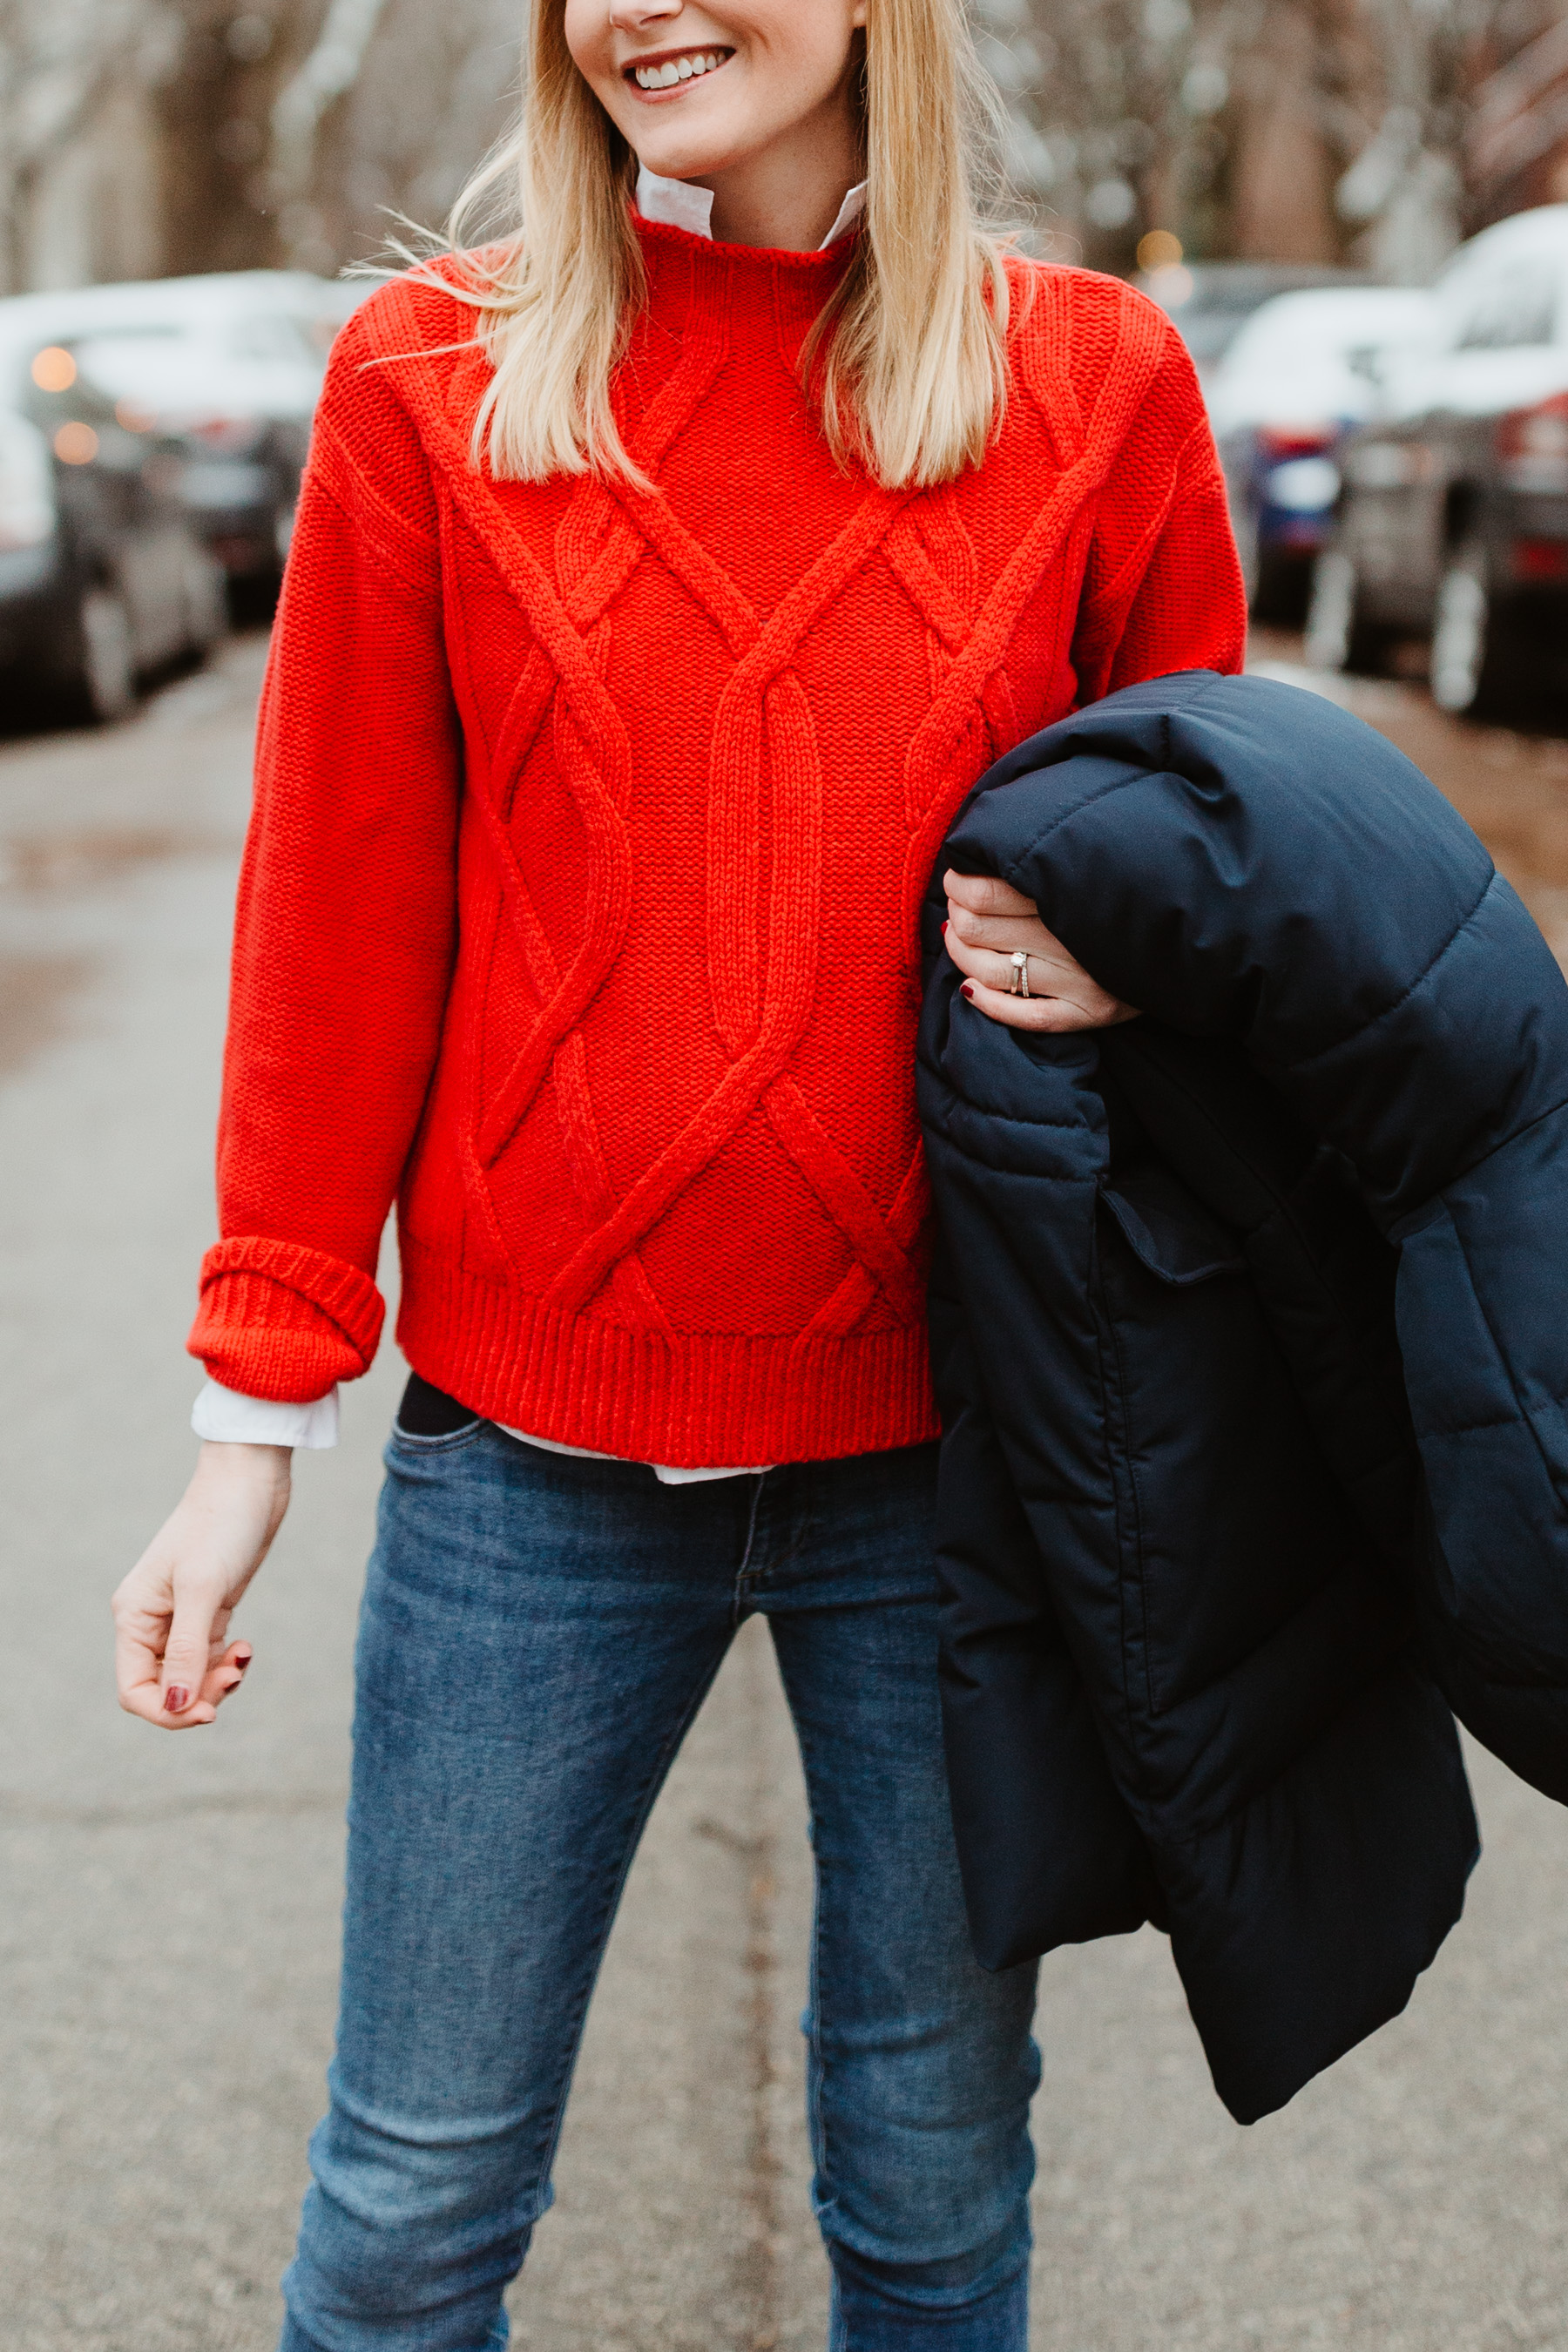 The Cable Mock Neck Sweater